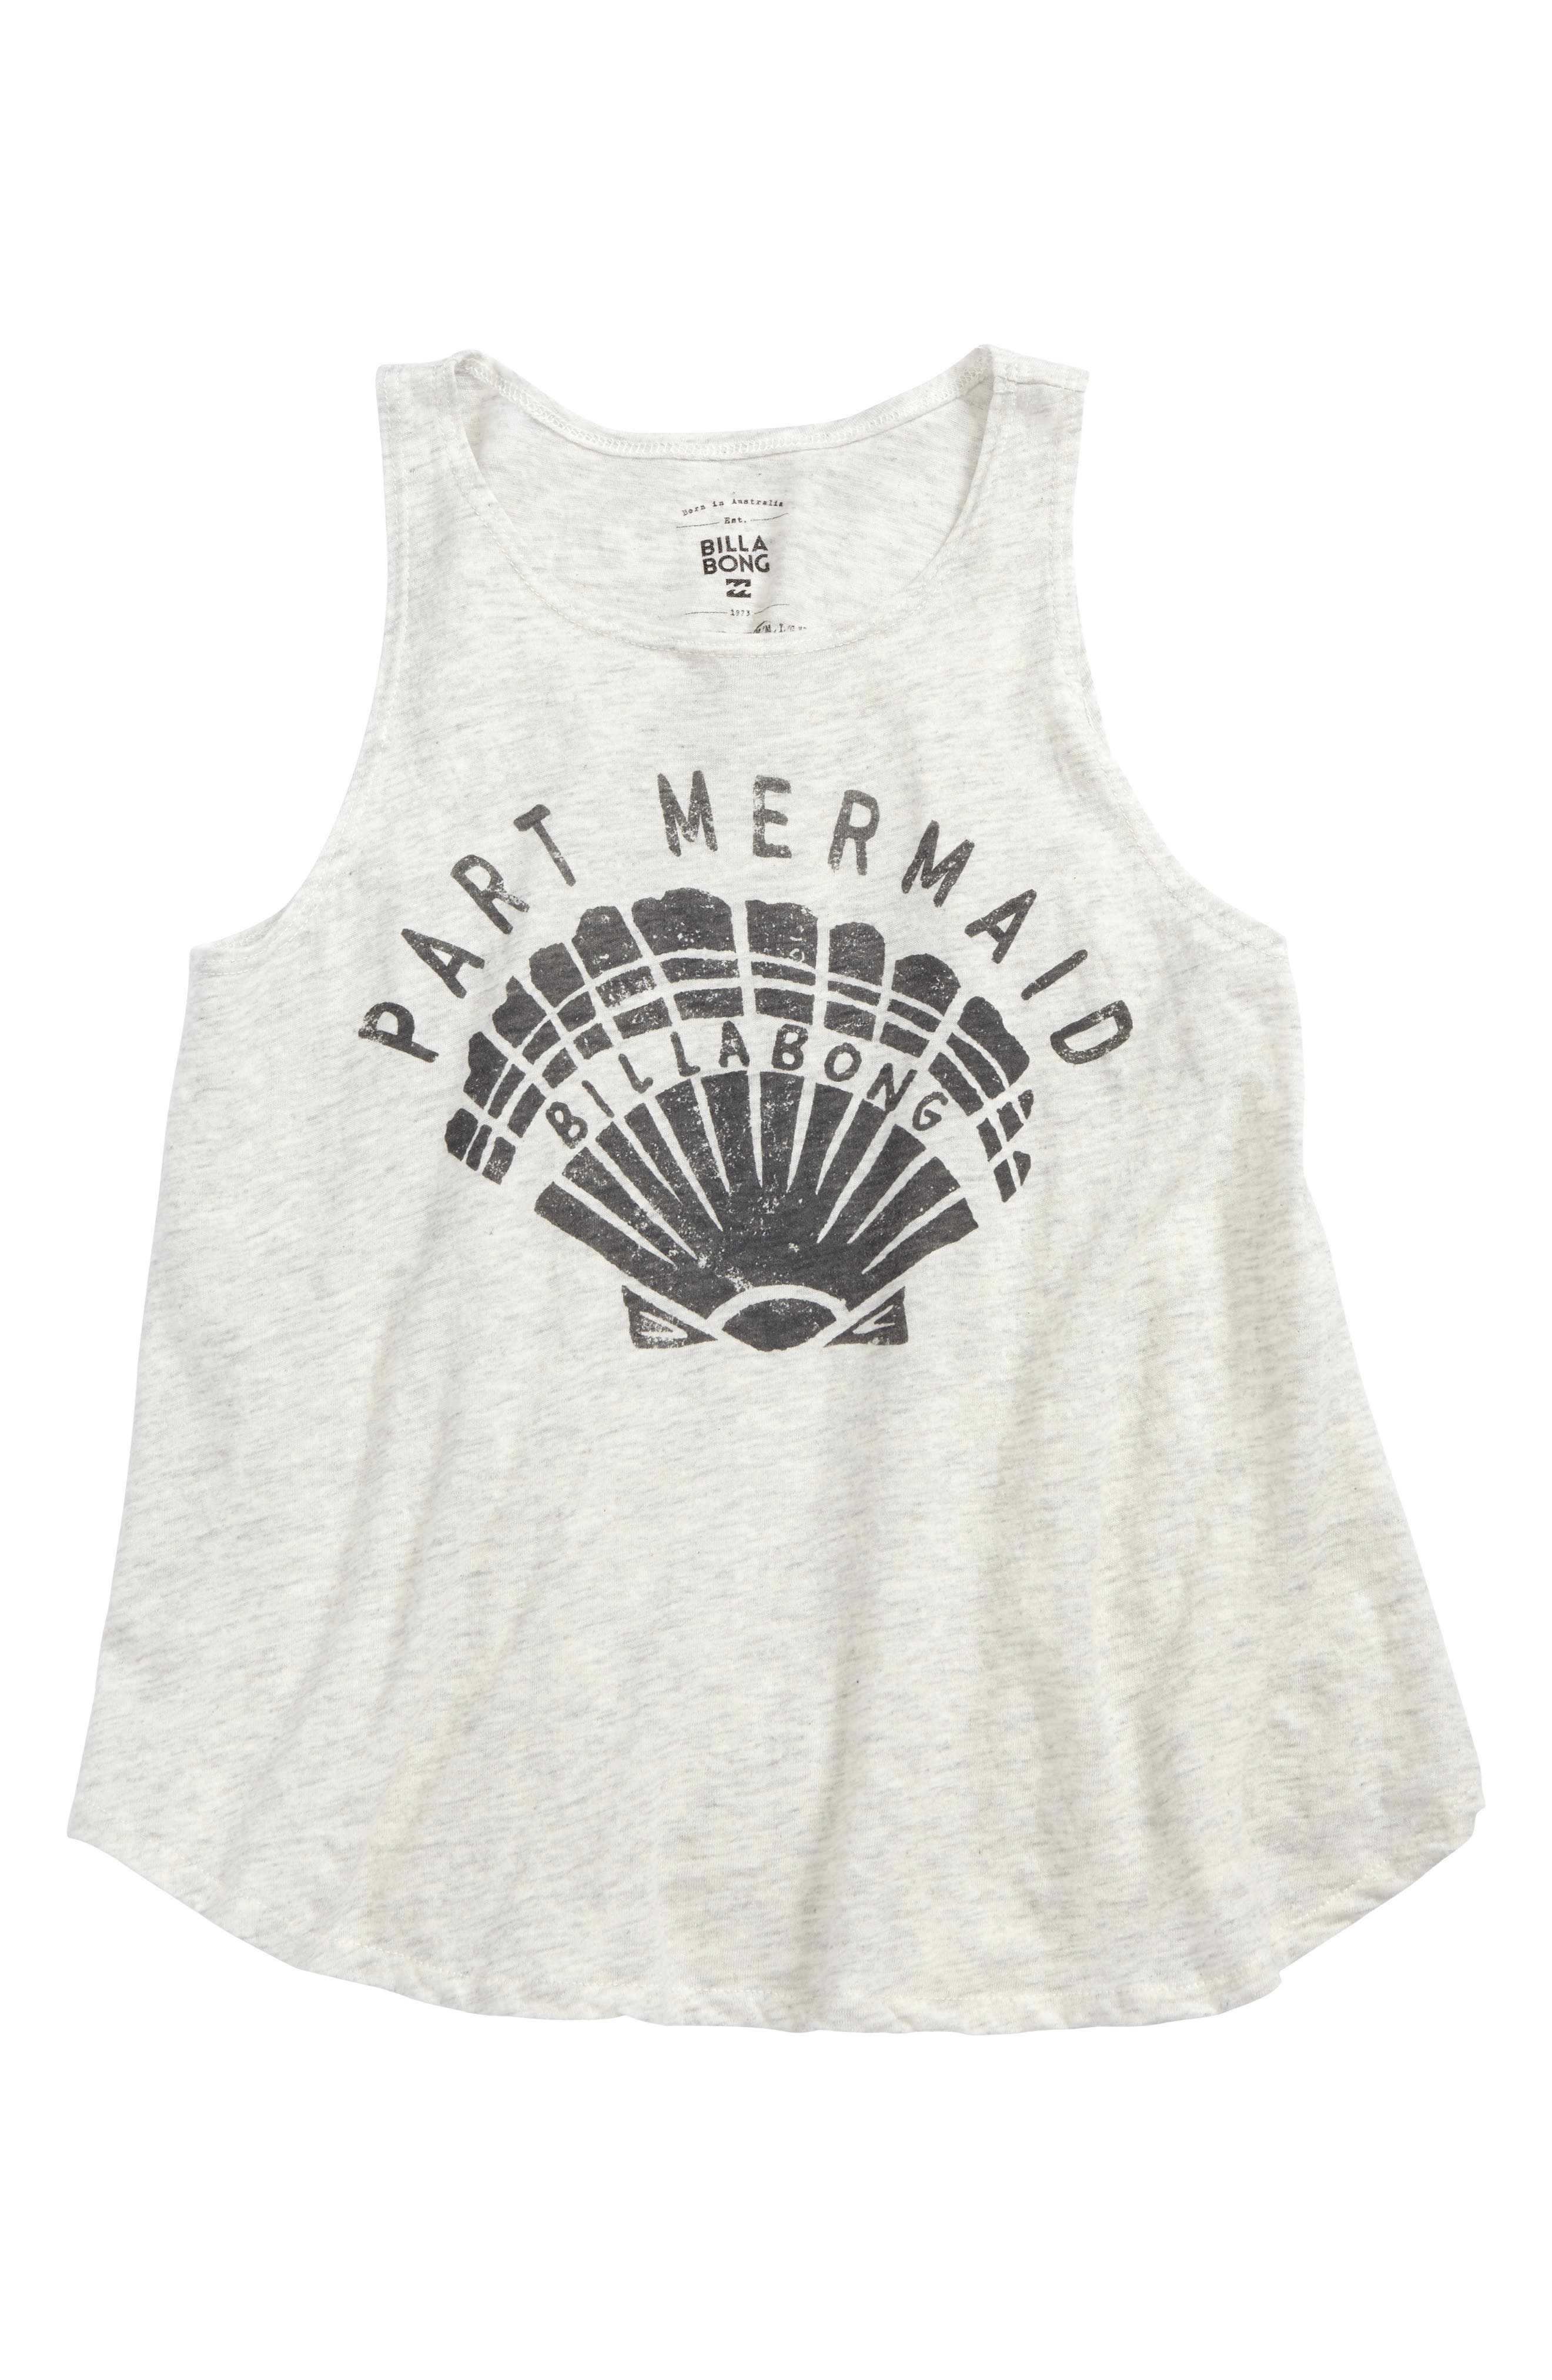 Part Mermaid Graphic Tee,                         Main,                         color, Ice Athletic Grey